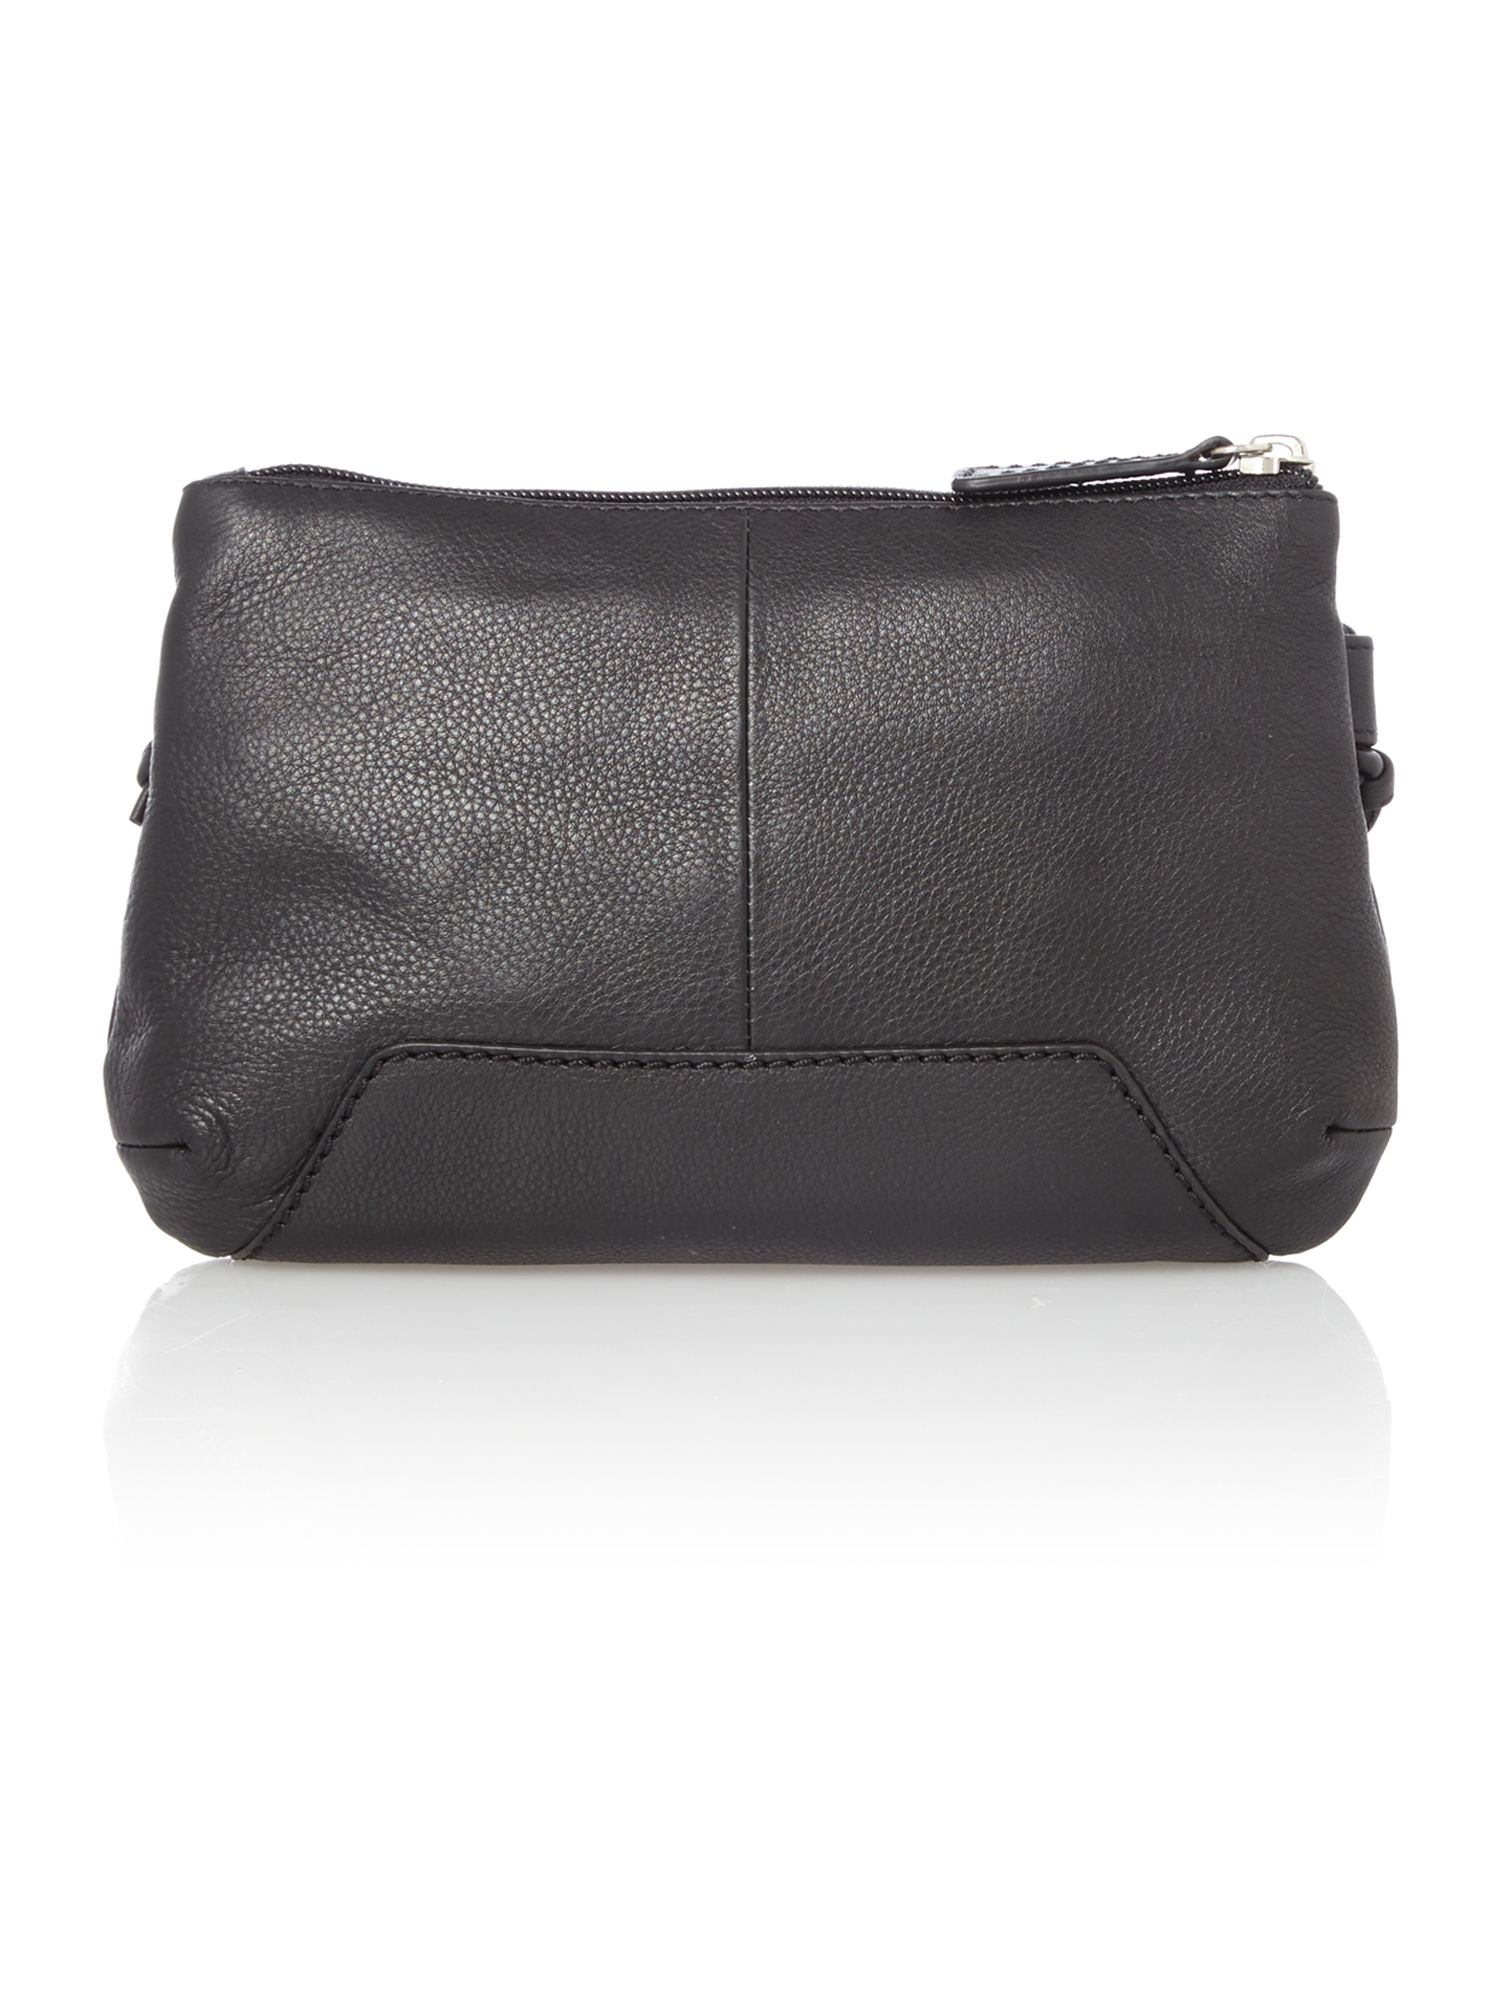 Finsbury small ziptop xbody black leather bag